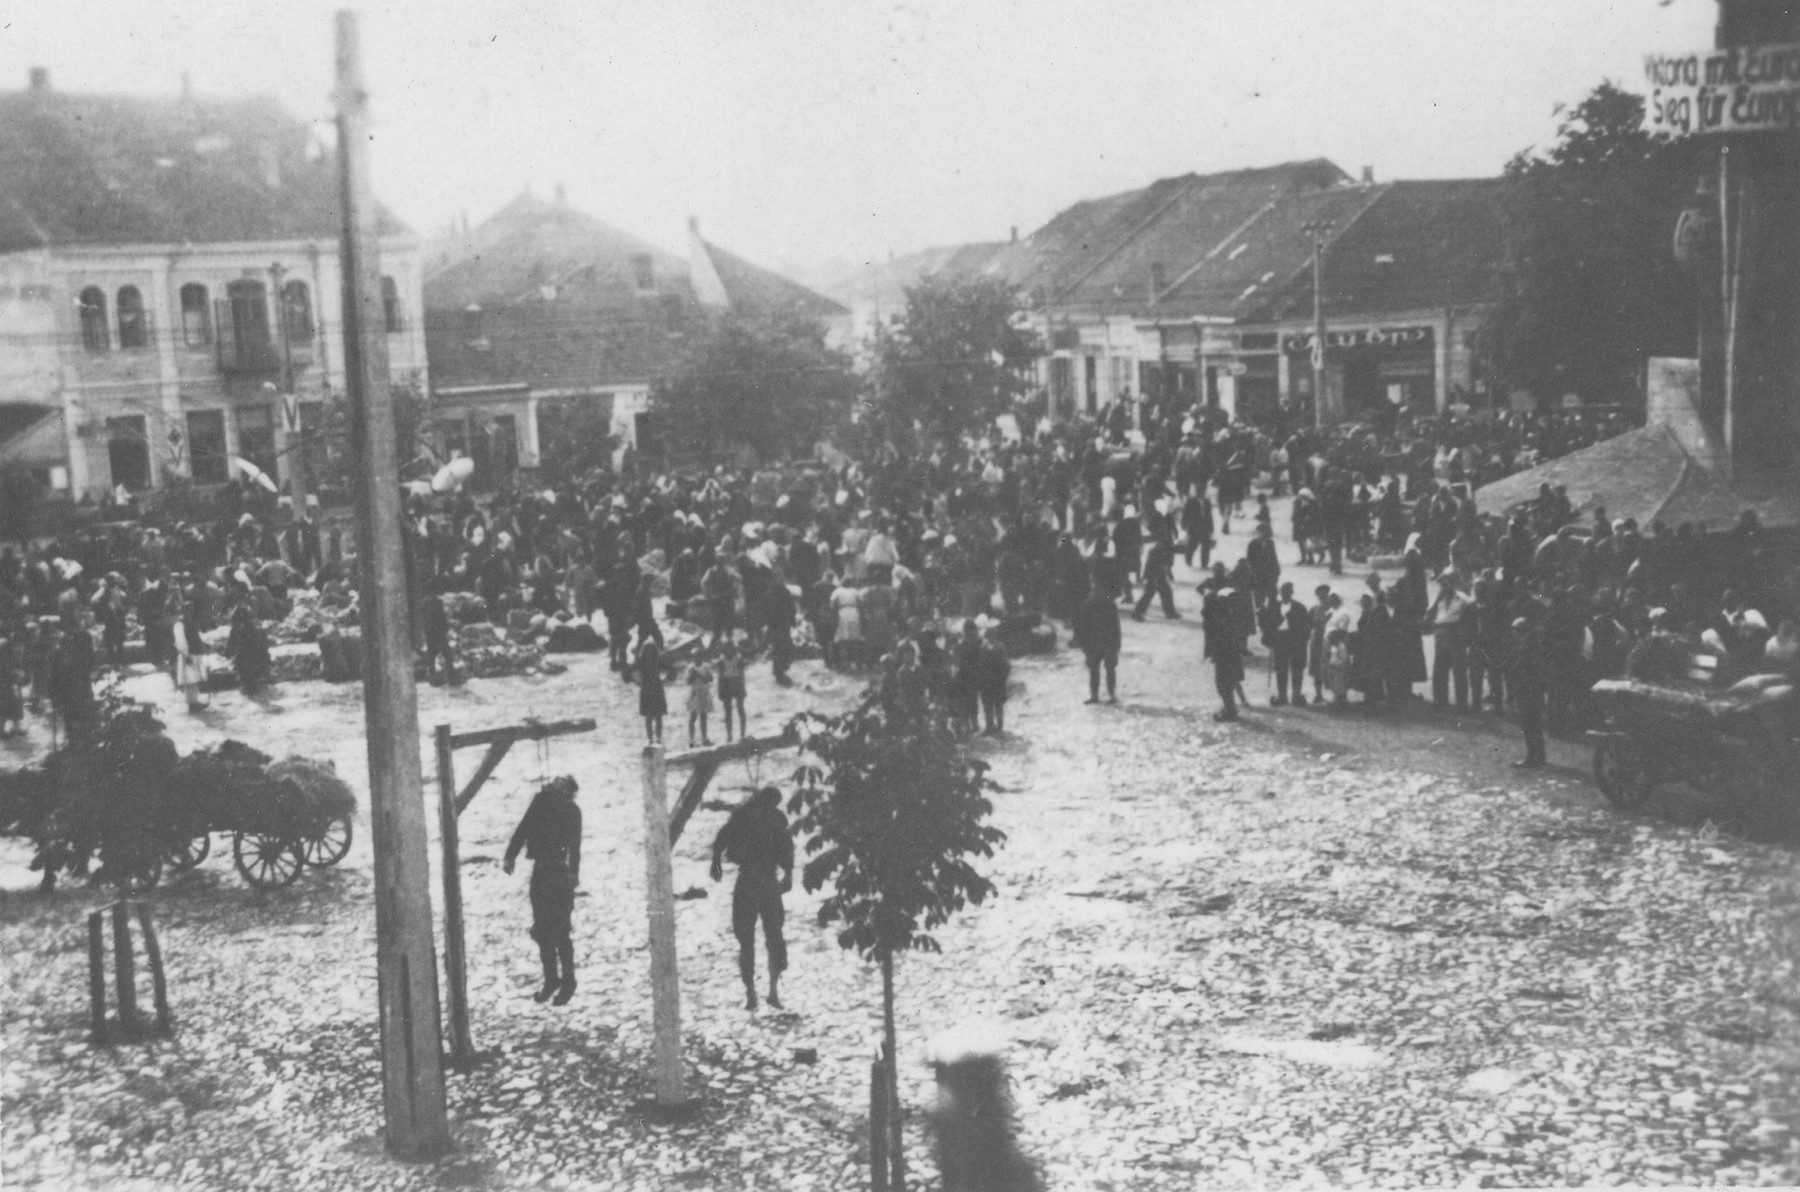 Two Serbian partisans executed by German soldiers hang from a gallows in the town square of Kraljevo.